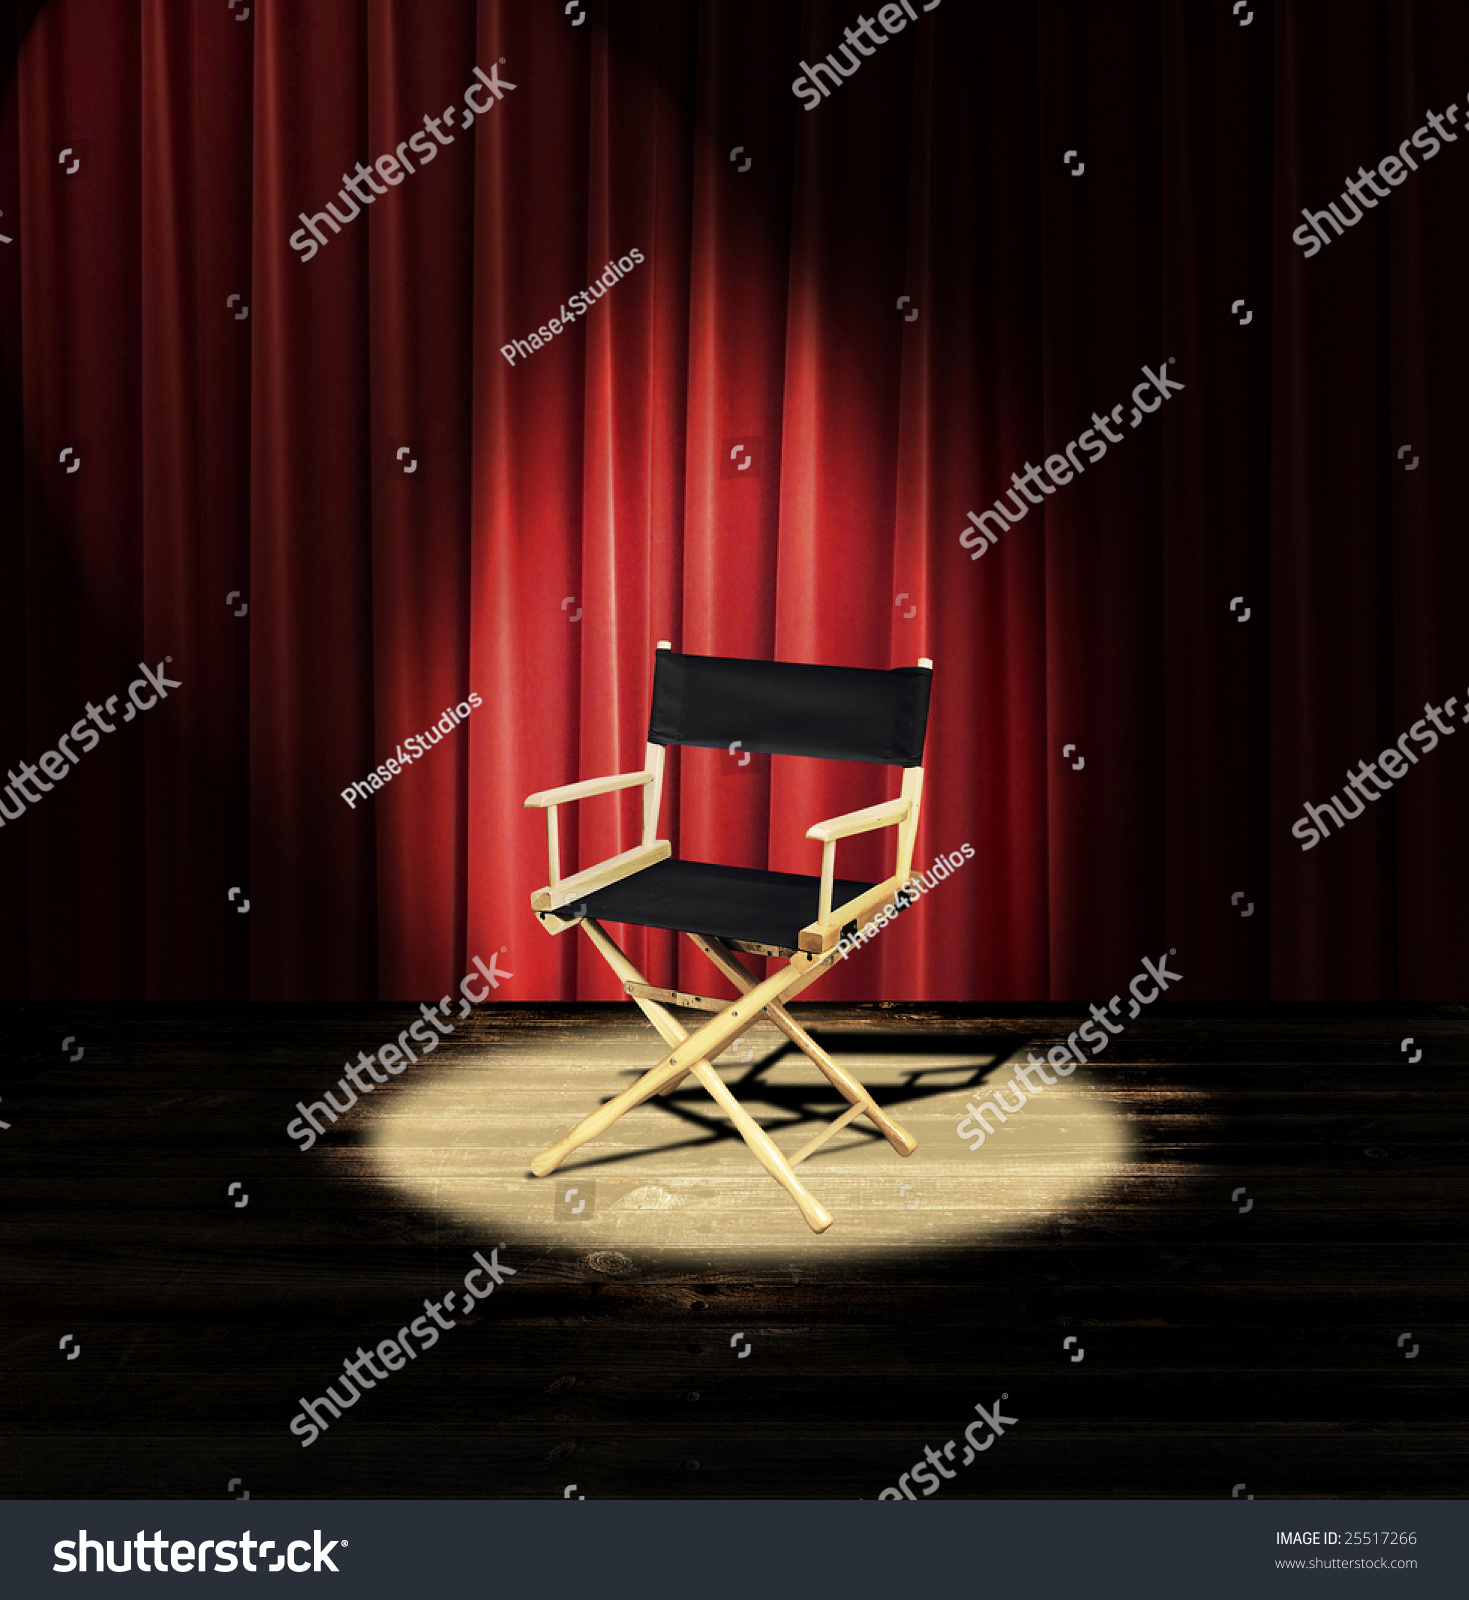 Red curtain spotlight - A Directors Chair On A Stage With A Red Curtain And Spotlight